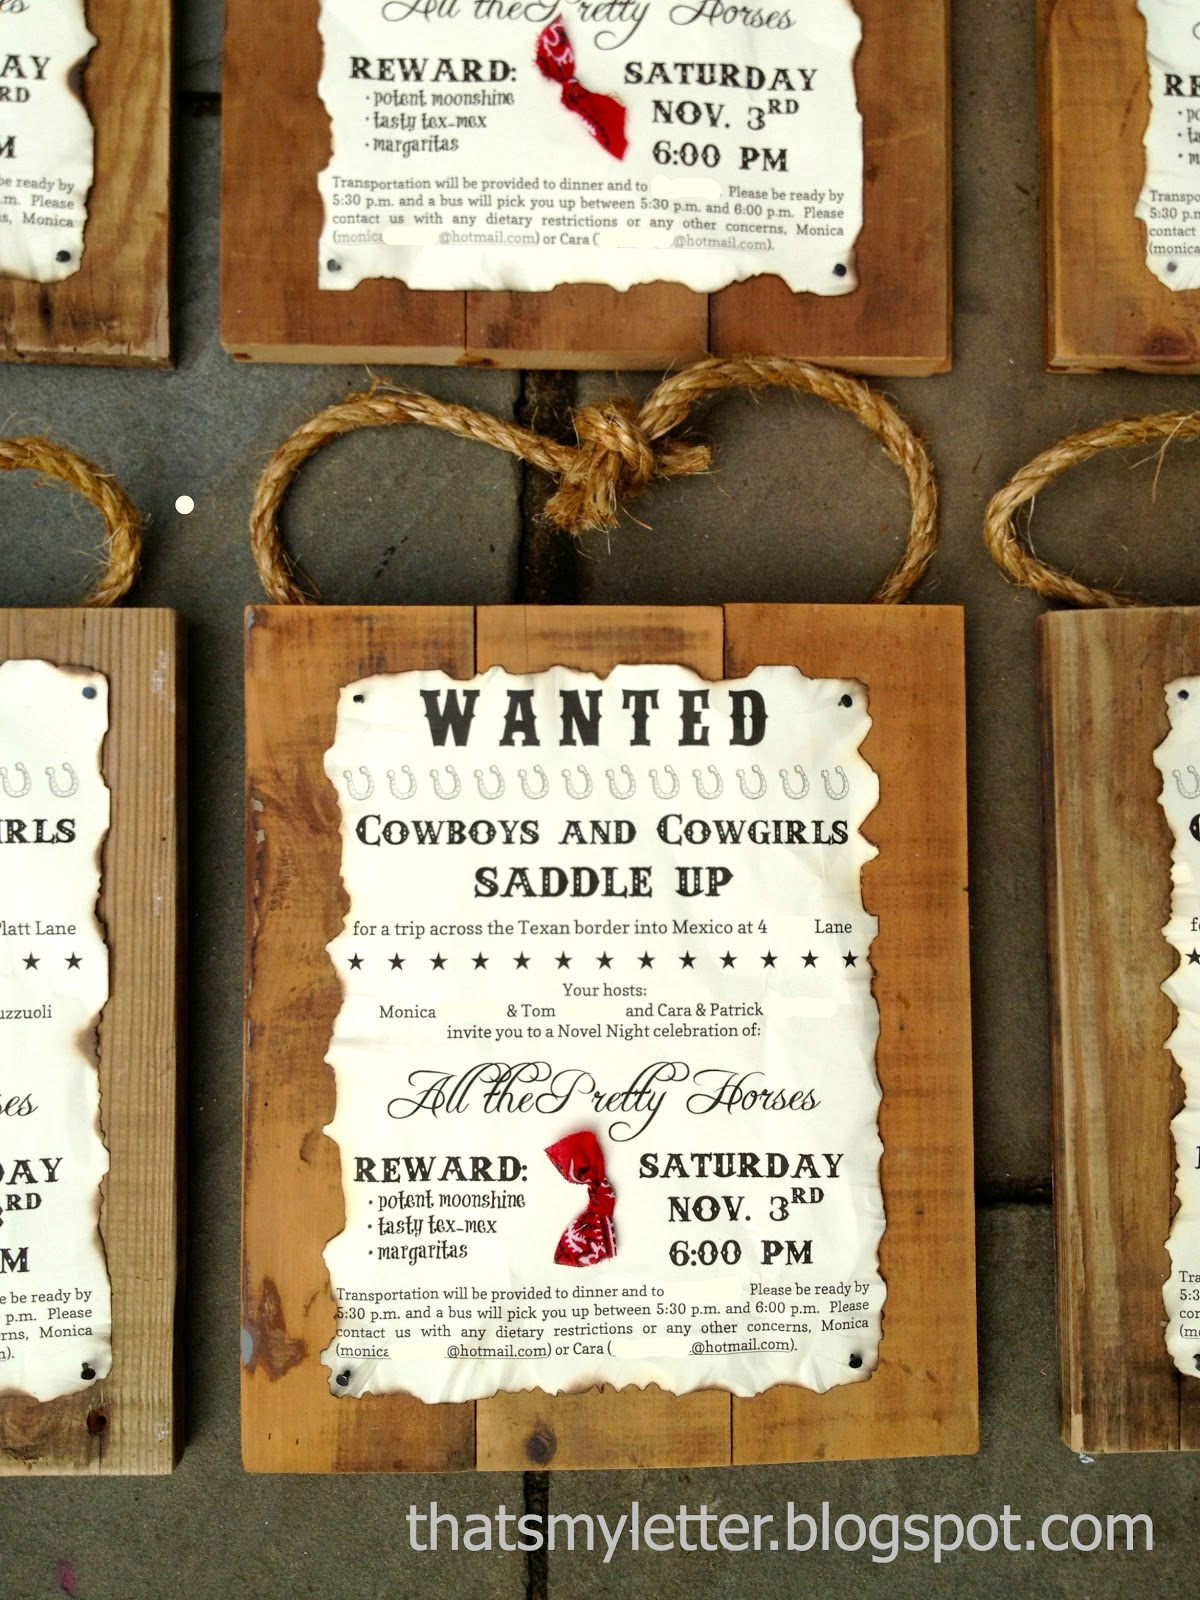 Cowboy party invitation ideas -  W Is For Wanted Party Invitations